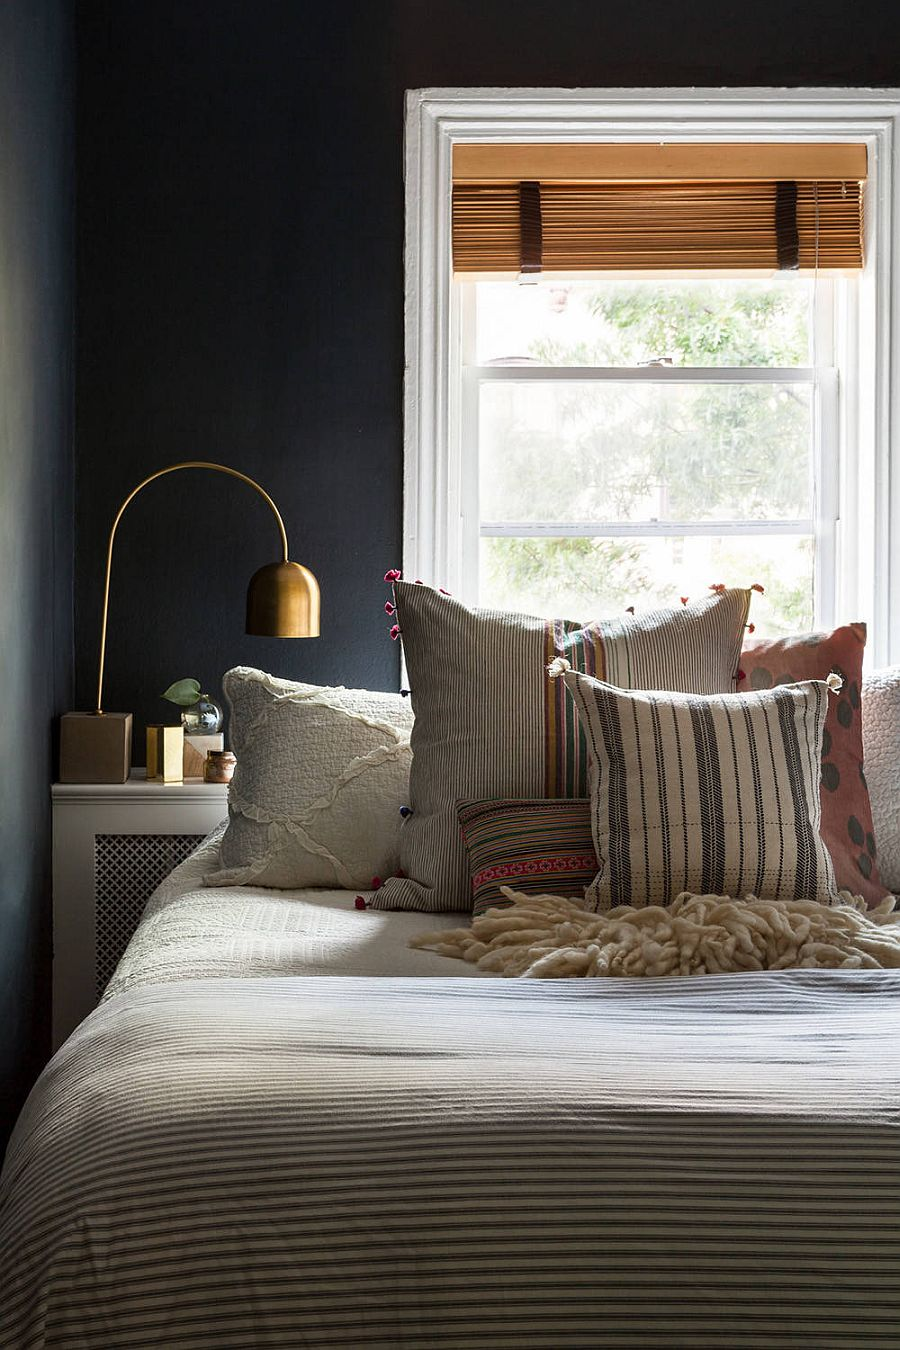 Dark-gray-backdrop-in-the-small-bedroom-gives-it-a-polsihed-urbane-style-75879